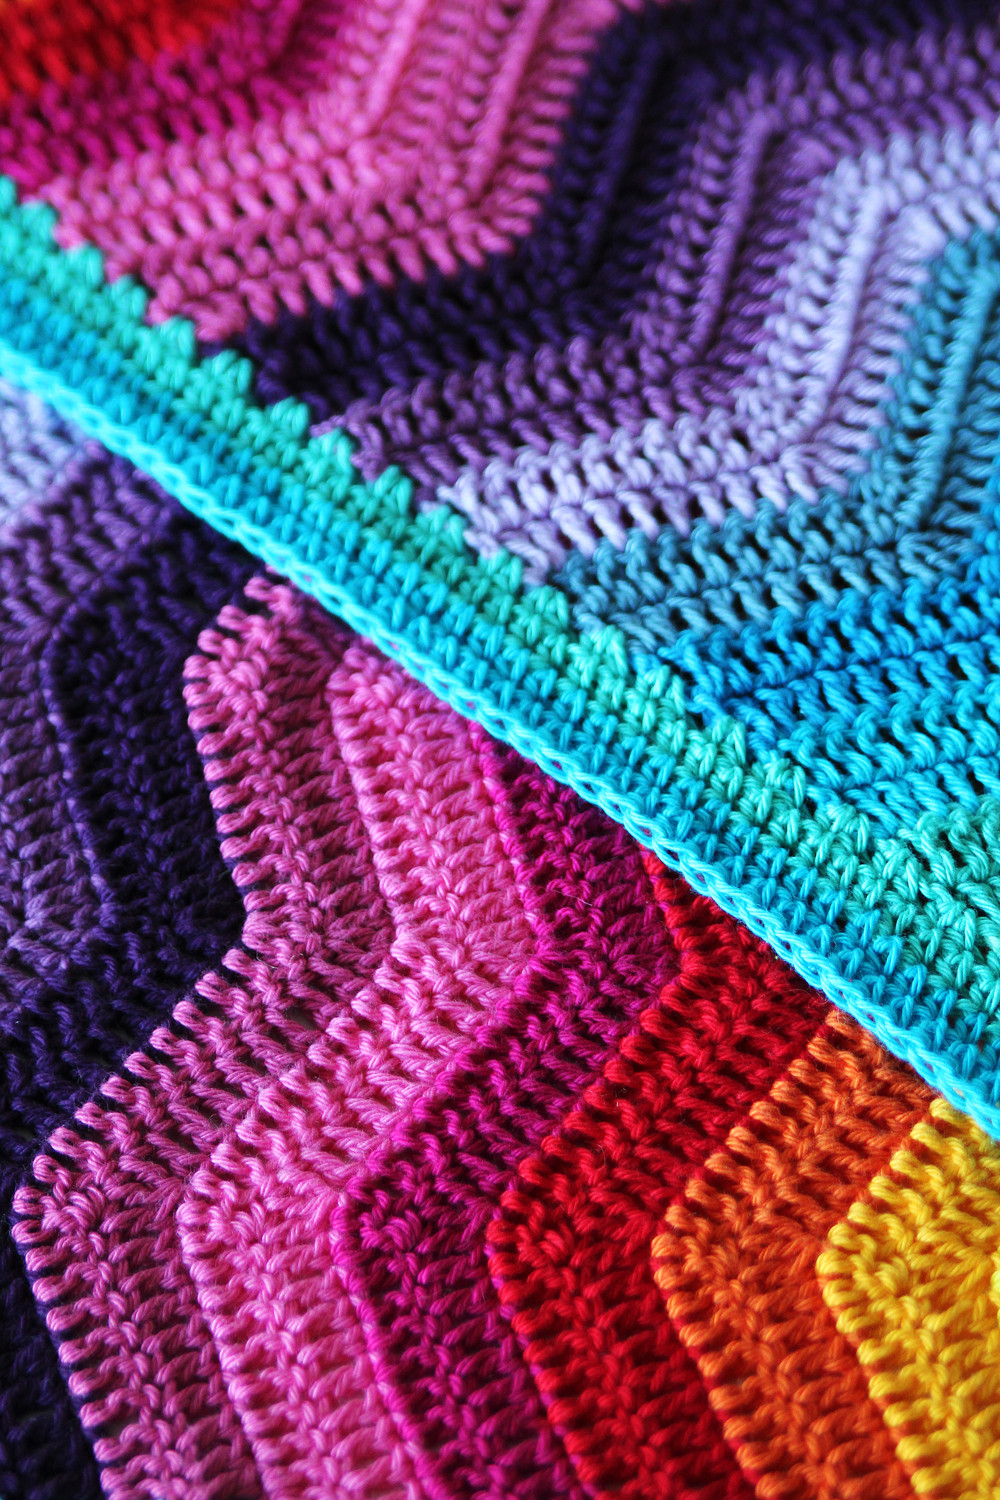 Rainbow Baby Blanket Beautiful New Crochet Pattern Rainbow Ripple Baby Blanket Of Charming 42 Ideas Rainbow Baby Blanket